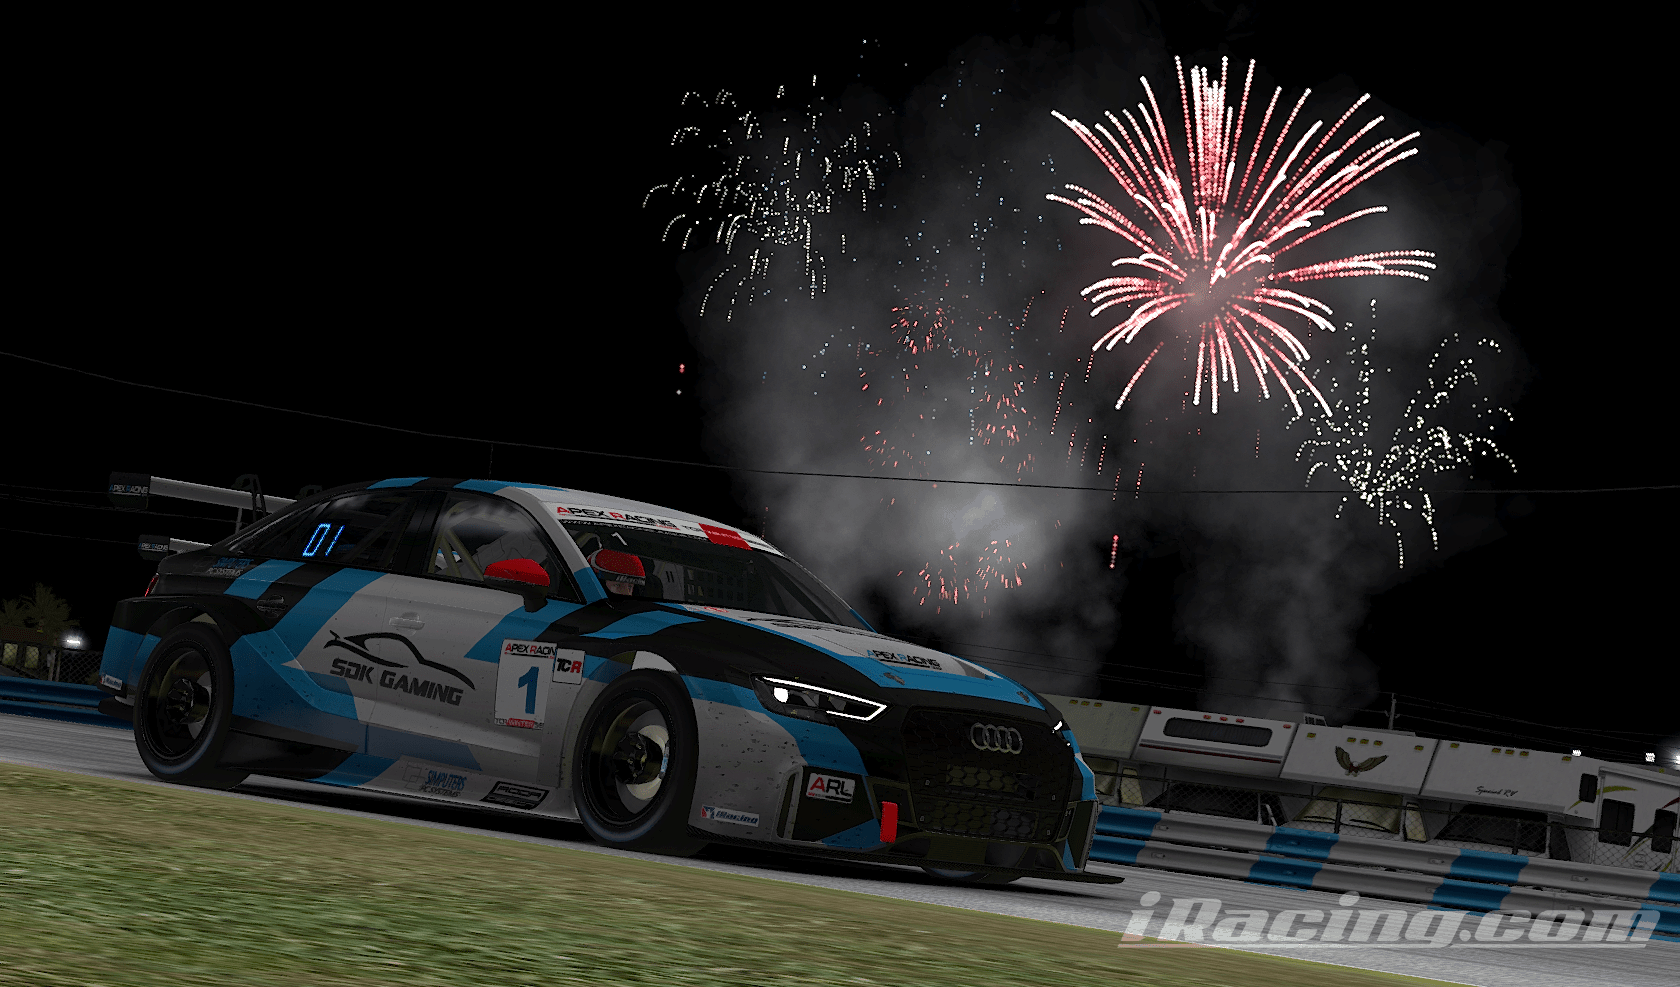 ARL TCR Winter Series 2019/20 - Daytona Fireworks